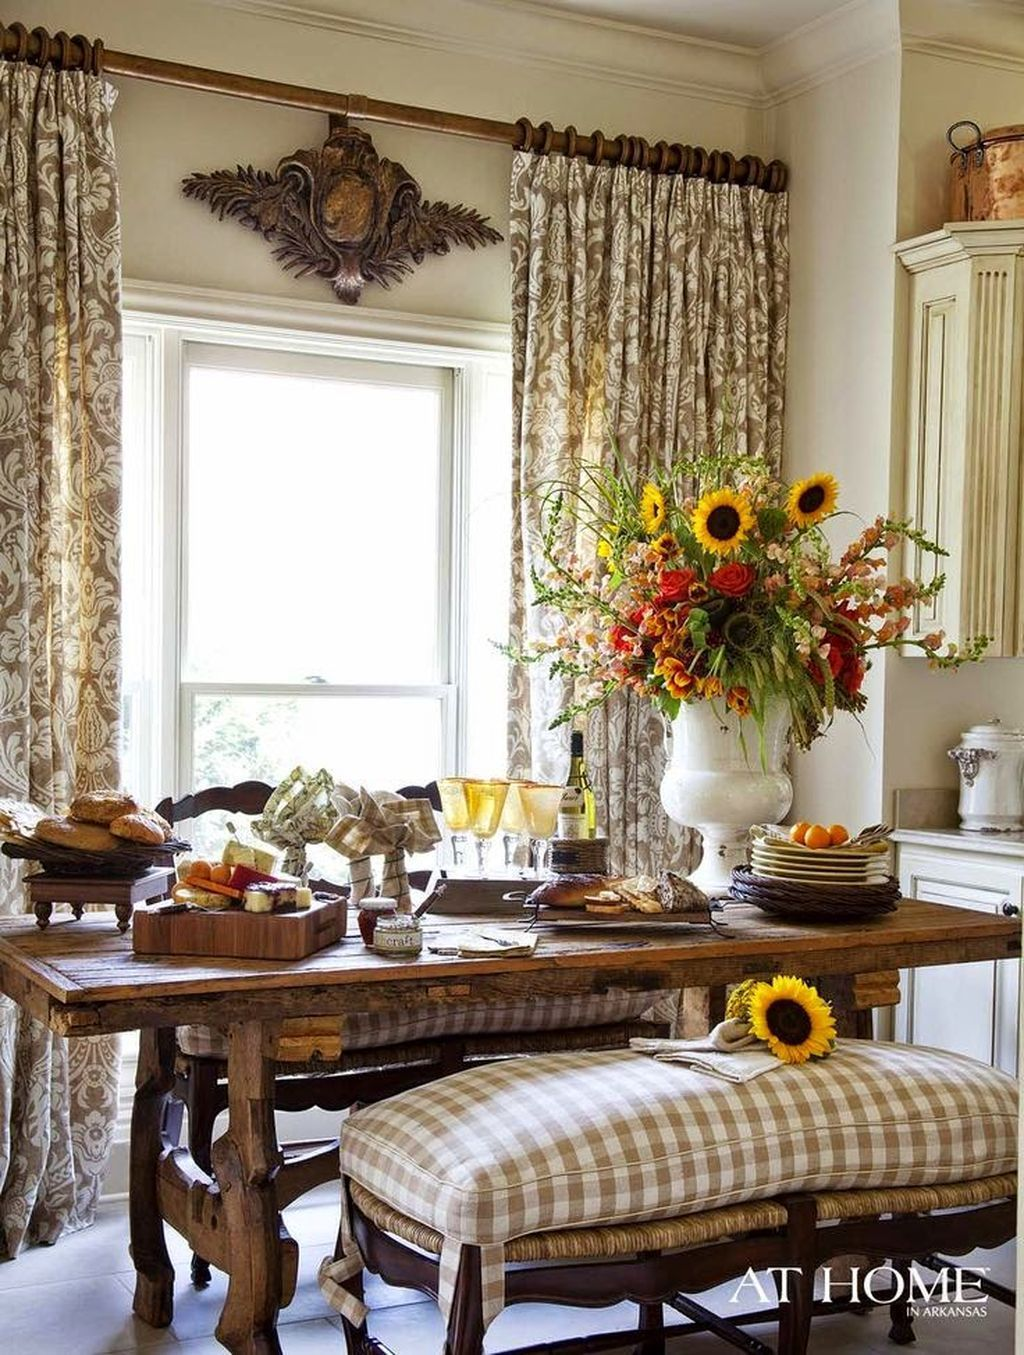 Cool french country kitchen ideas on a budget dining room ideas